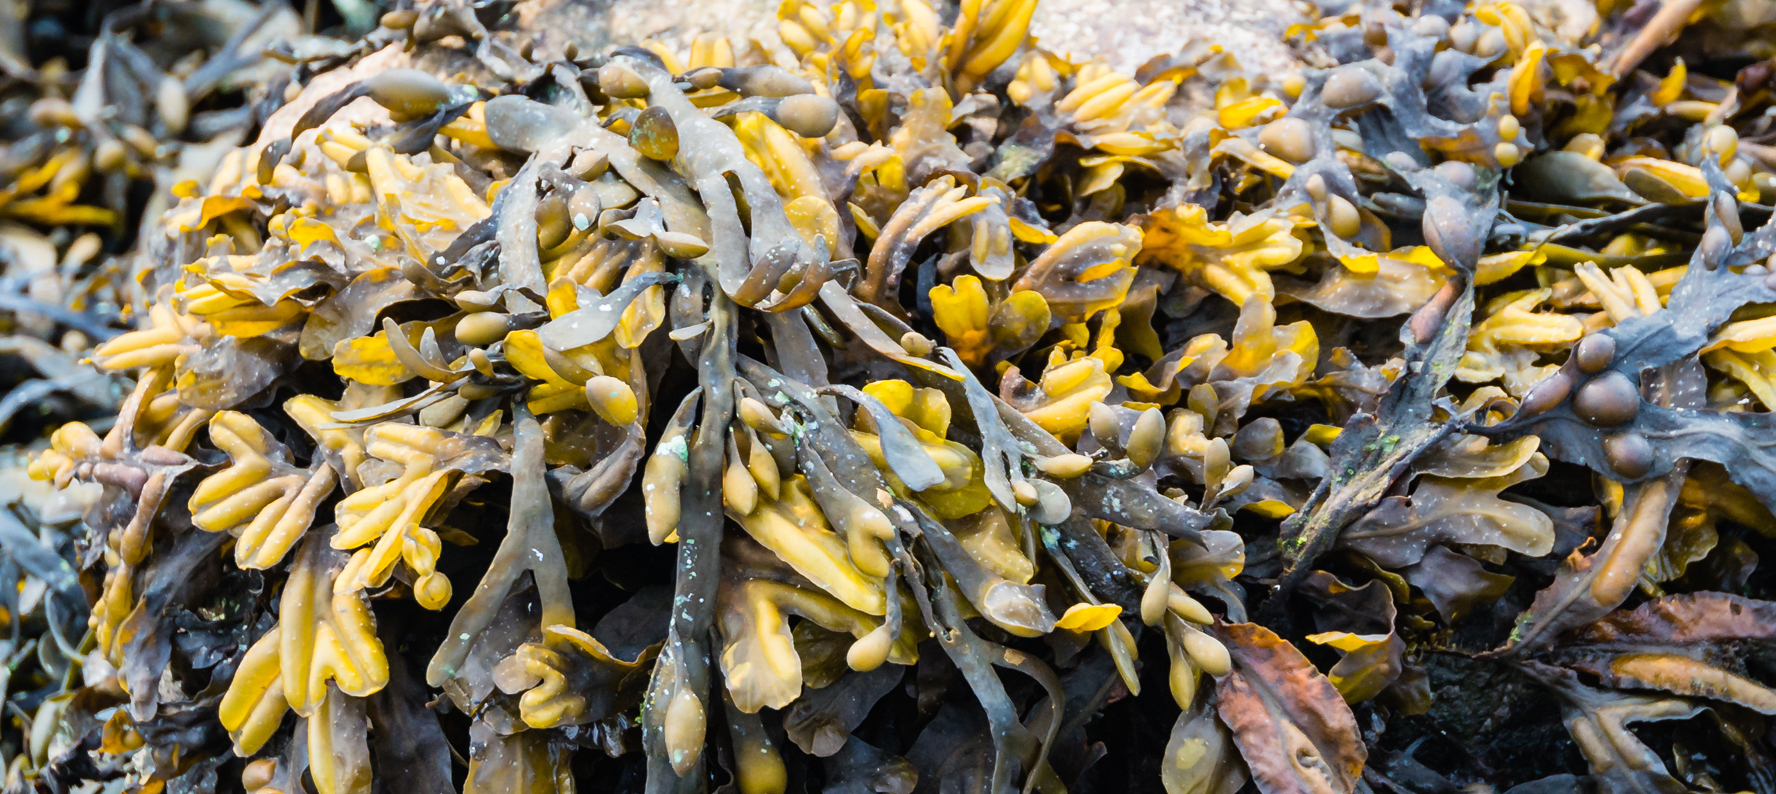 Bladderwrack is used in natural skin care products for its antioxidant and skin regeneration properties.